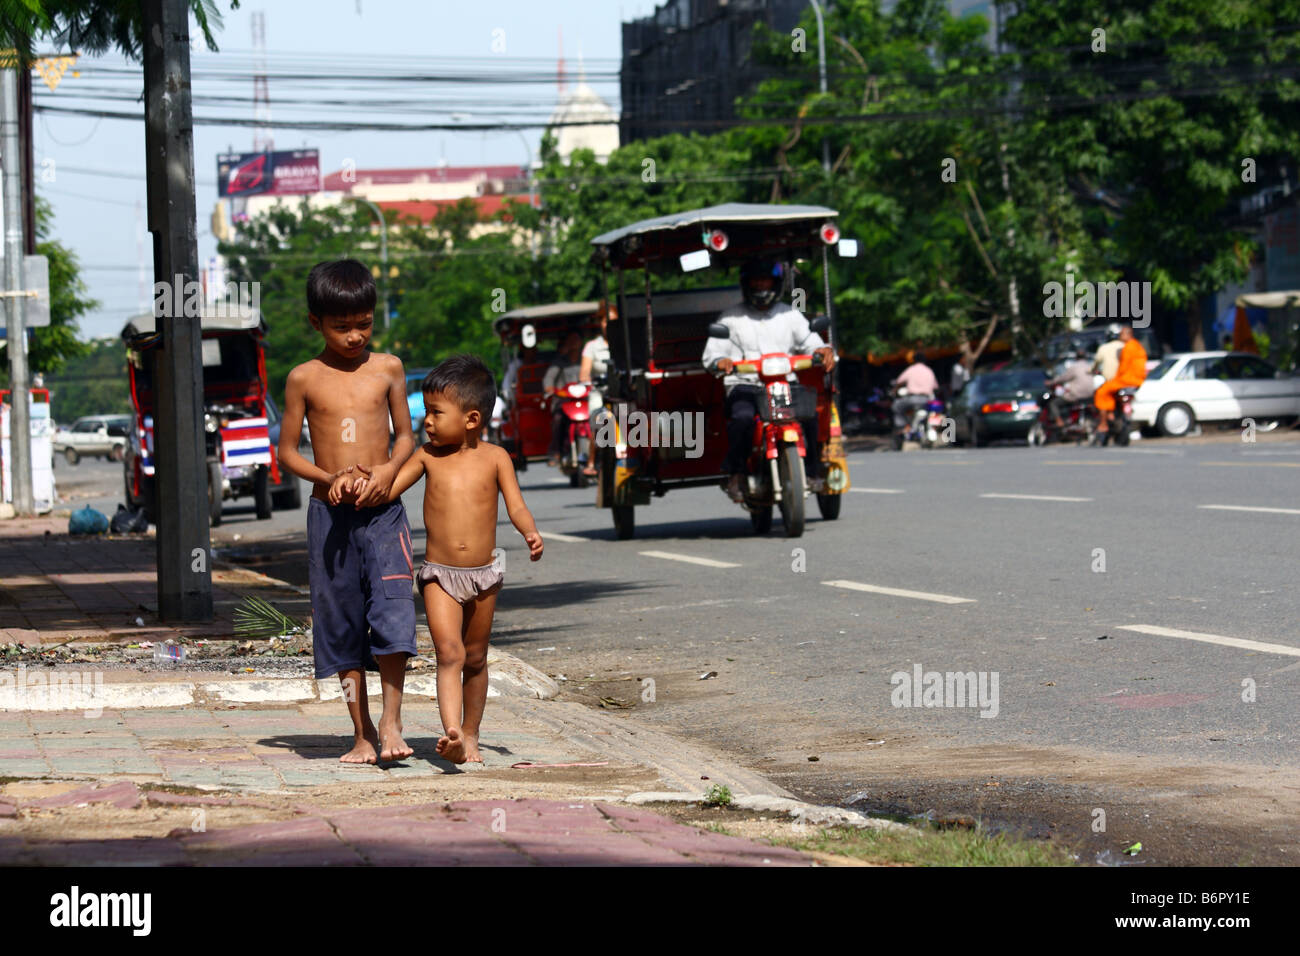 Stock Photo - Young local kids boy walking half naked and bare foot in ...: www.alamy.com/stock-photo-young-local-kids-boy-walking-half-naked...